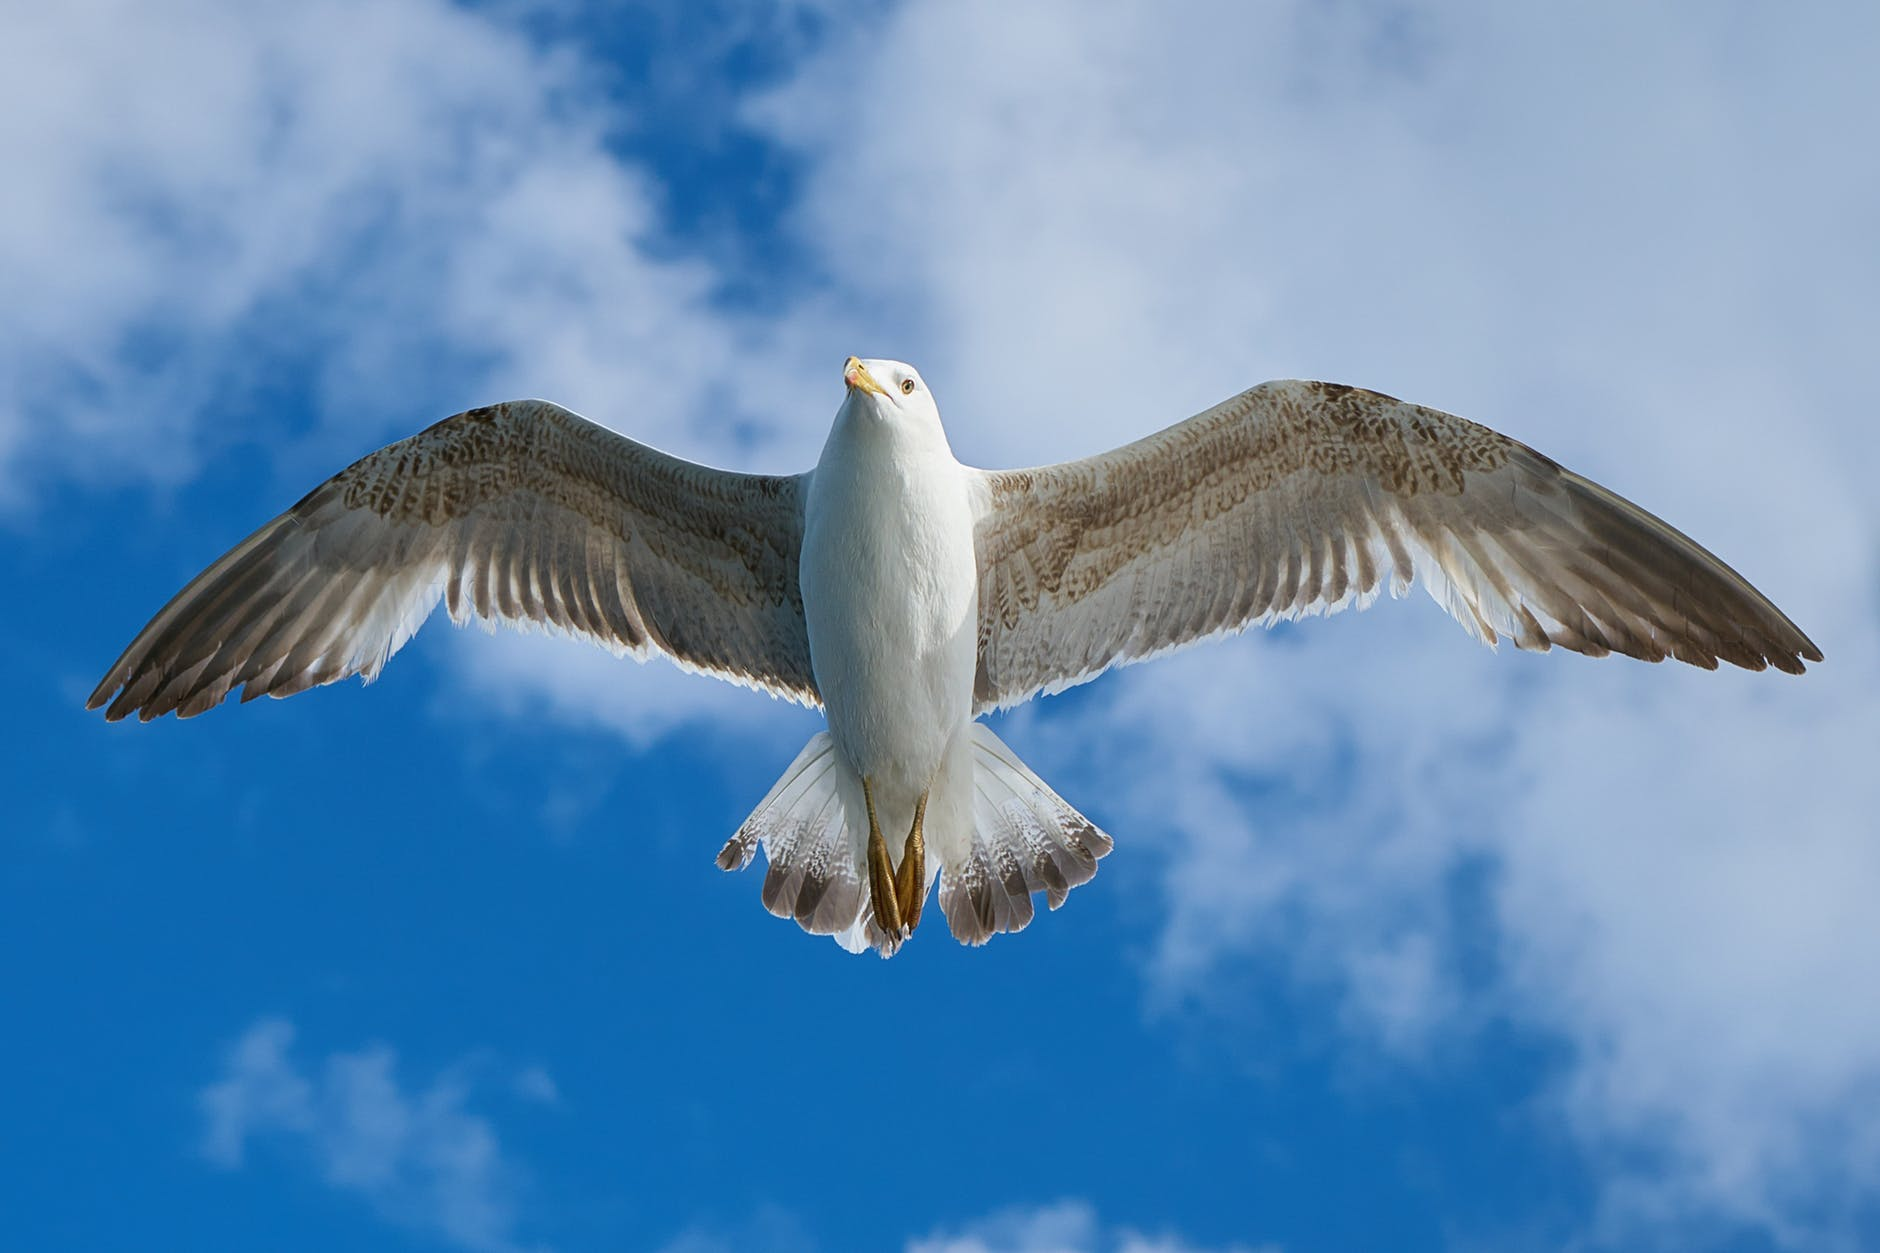 white and grey bird flying freely at blue cloudy sky